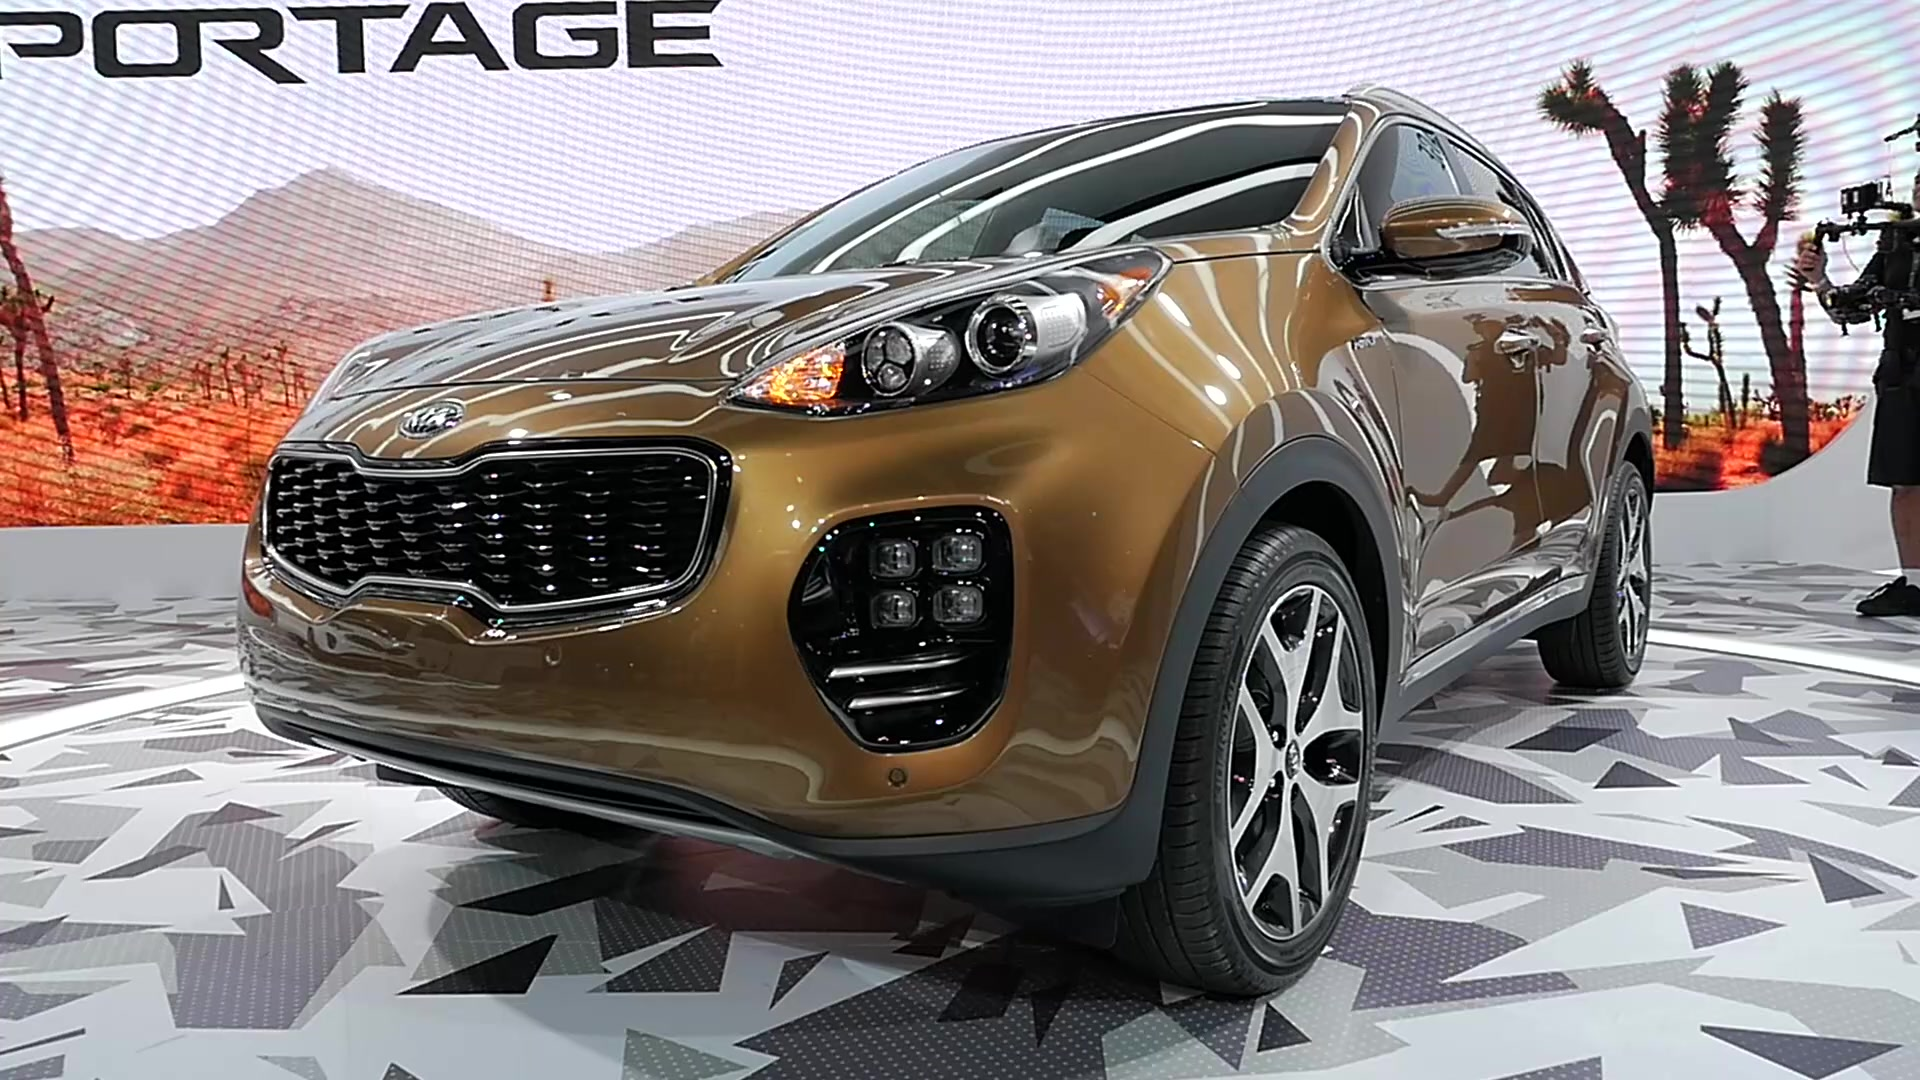 56509f38e4b0a81533bcc4de_1_v1 2017 kia sportage gets bigger and gains bulbous new duds autoblog 2017 Kia Sportage Oil Change at panicattacktreatment.co